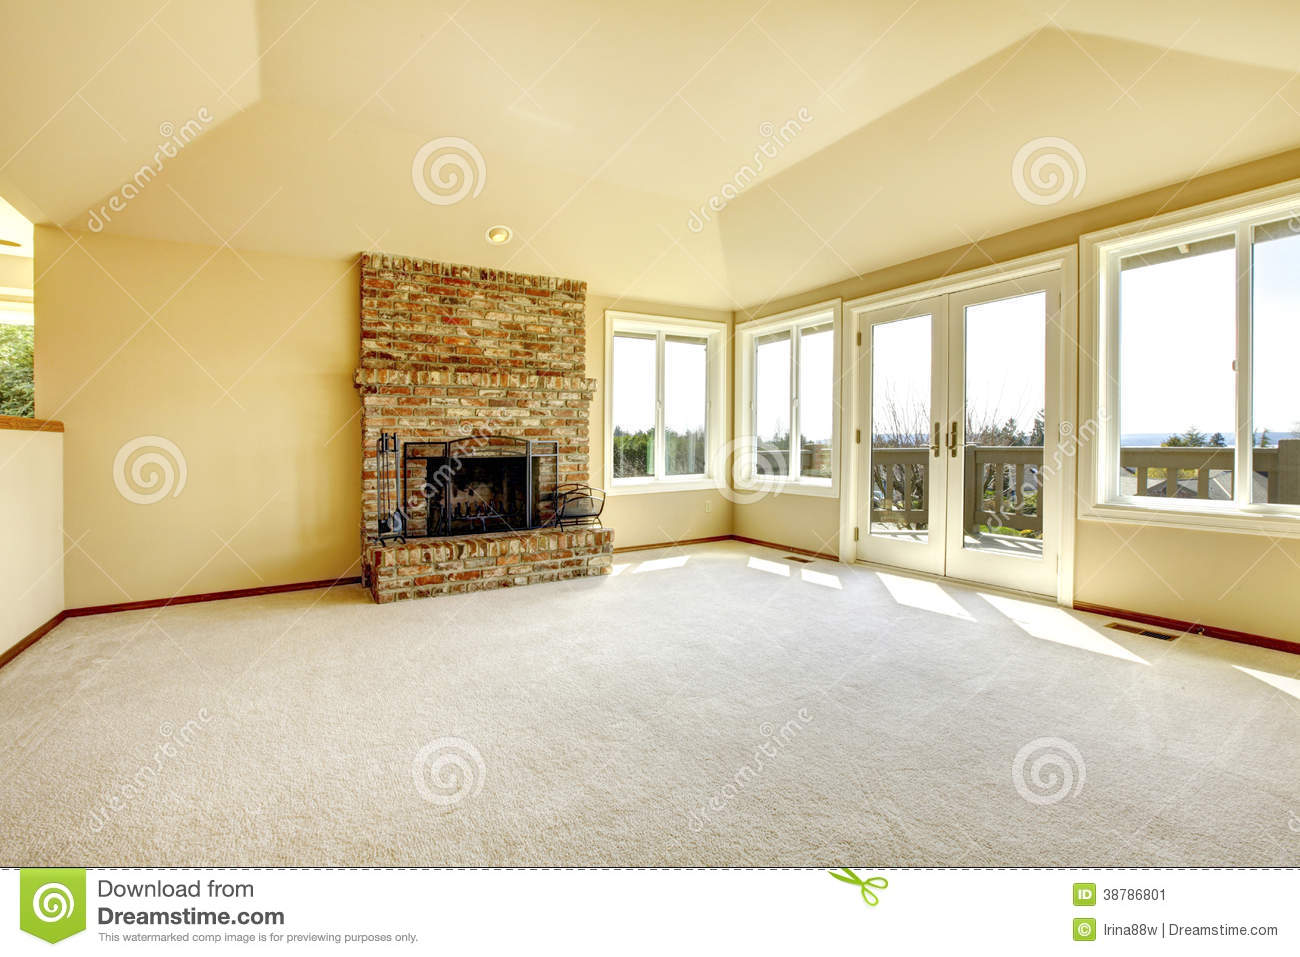 Room Background: Empty Living Room With A Fireplace Stock Image